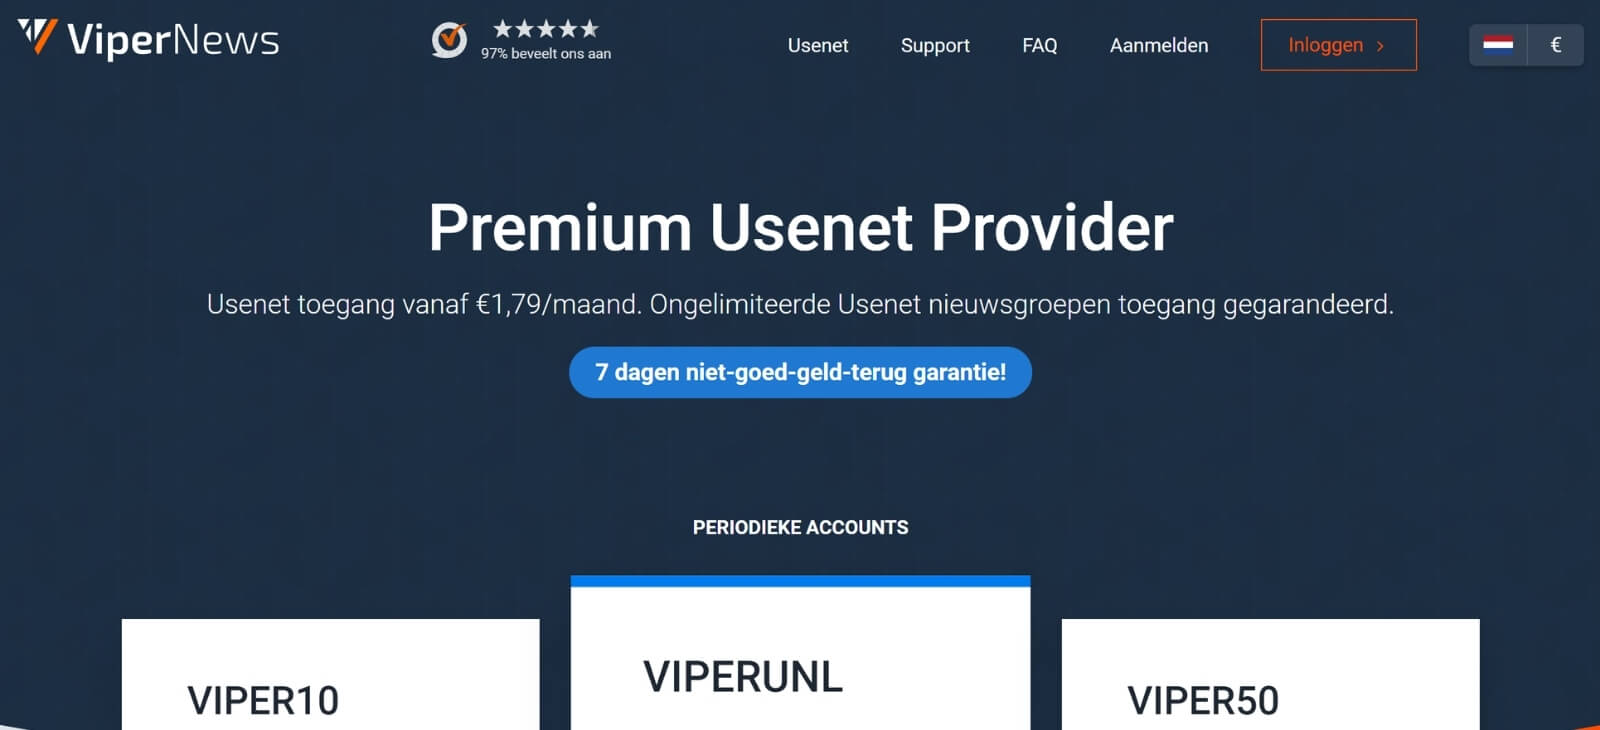 ViperNews review